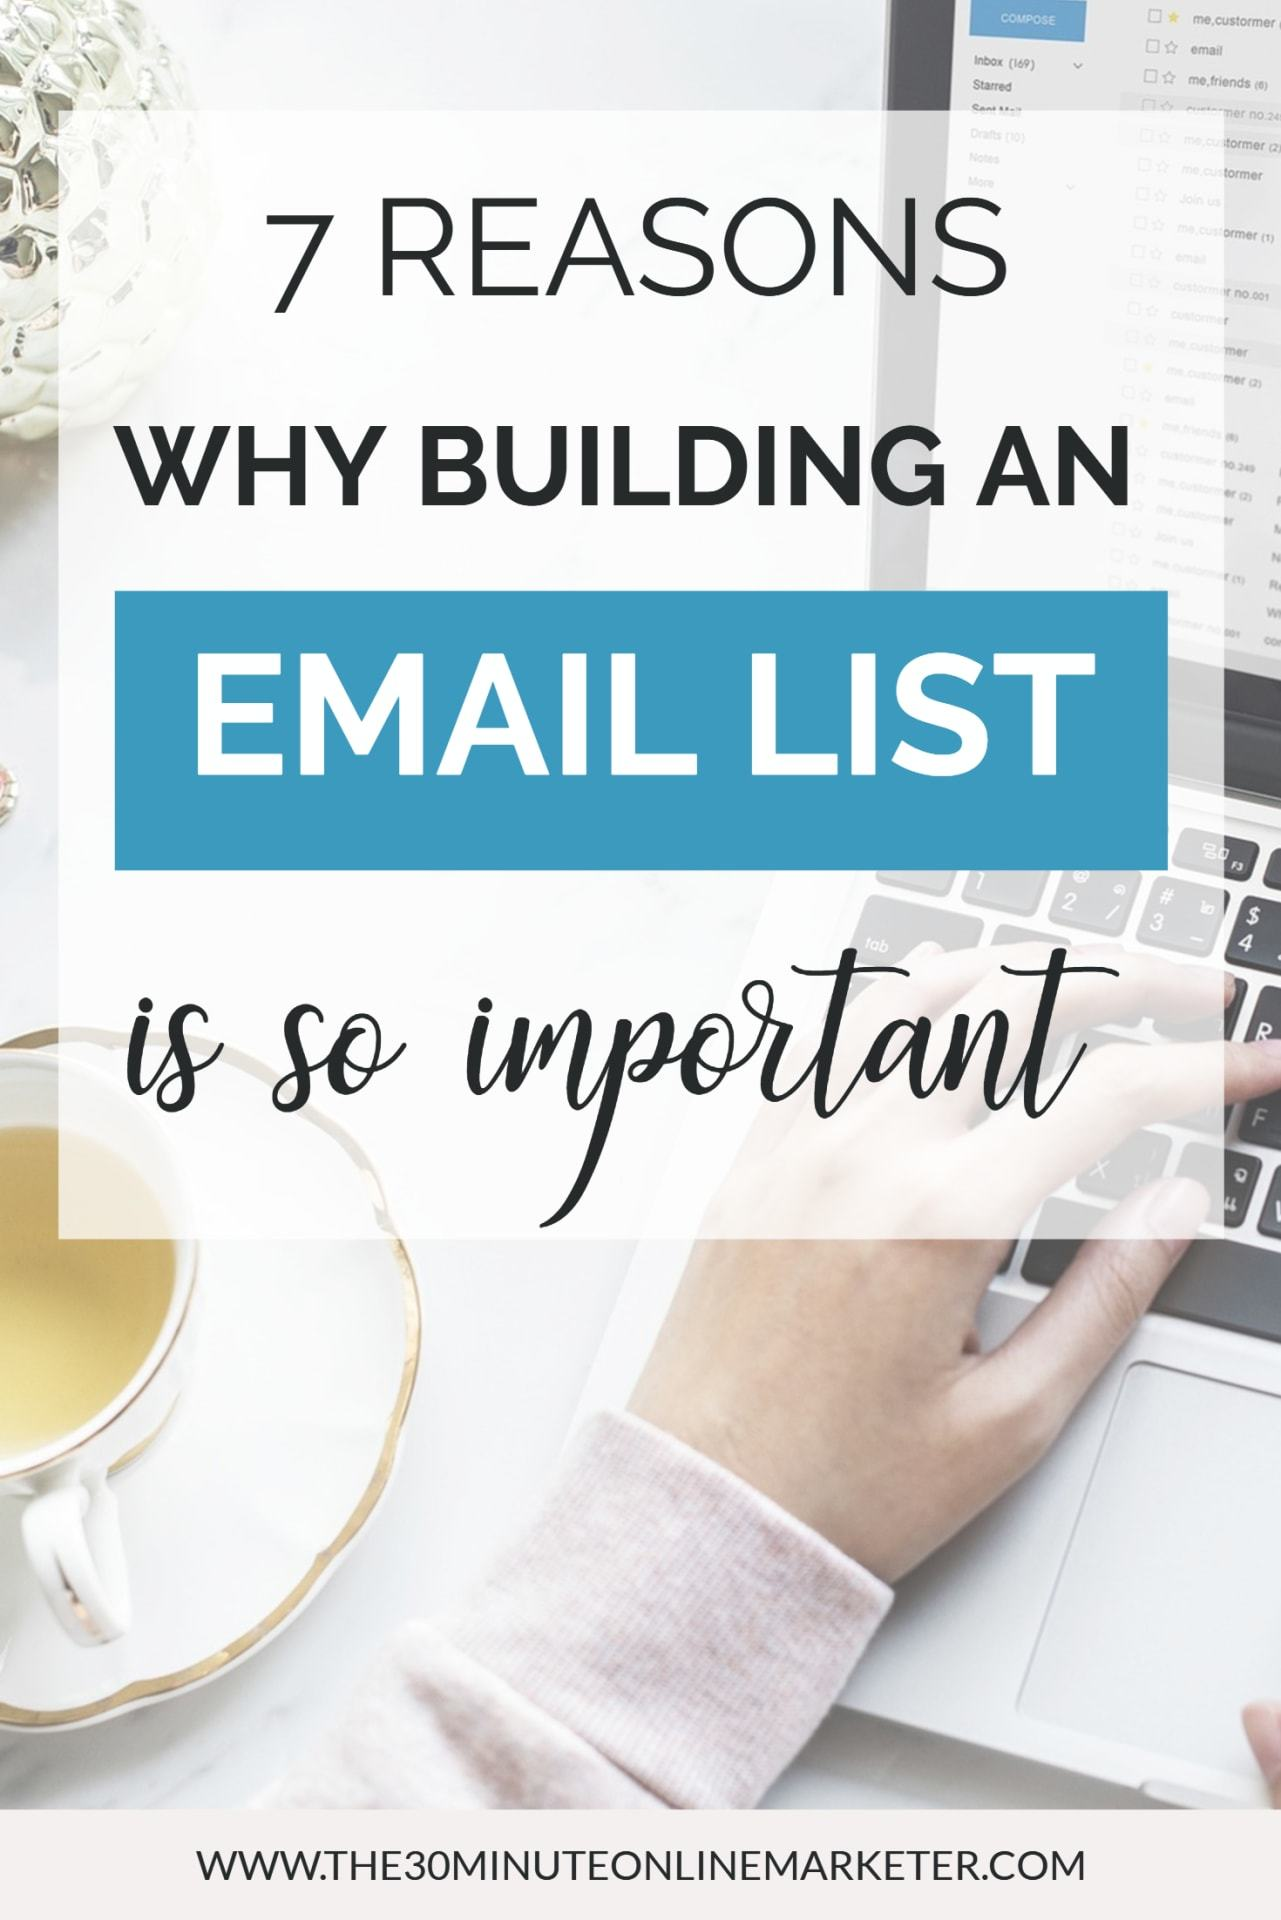 7 reasons why building an email list is so important